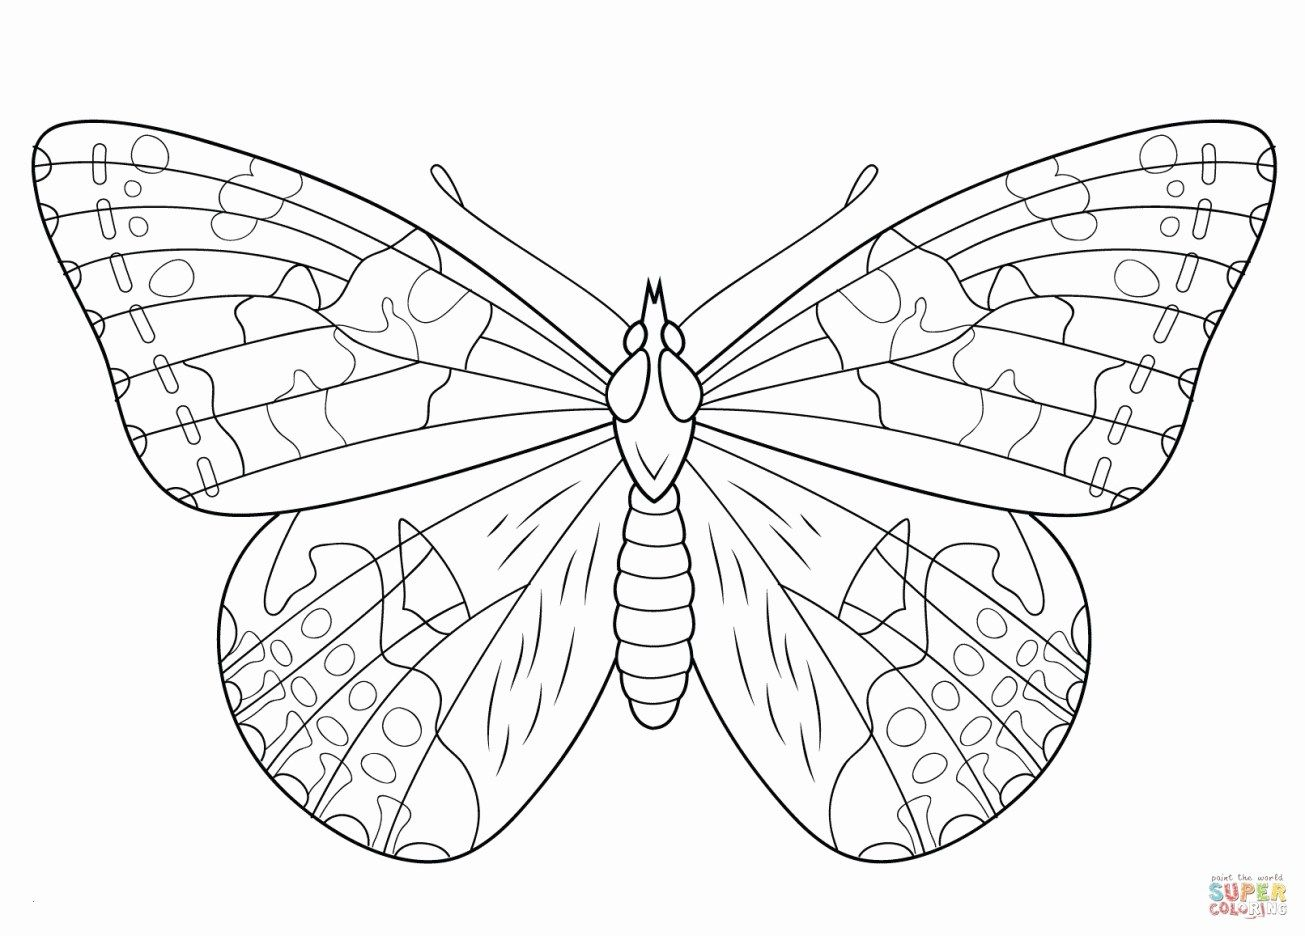 Brilliant Image Of Monarch Butterfly Coloring Page Davemelillo Com Butterfly Coloring Page Super Coloring Pages Insect Coloring Pages [ 936 x 1305 Pixel ]